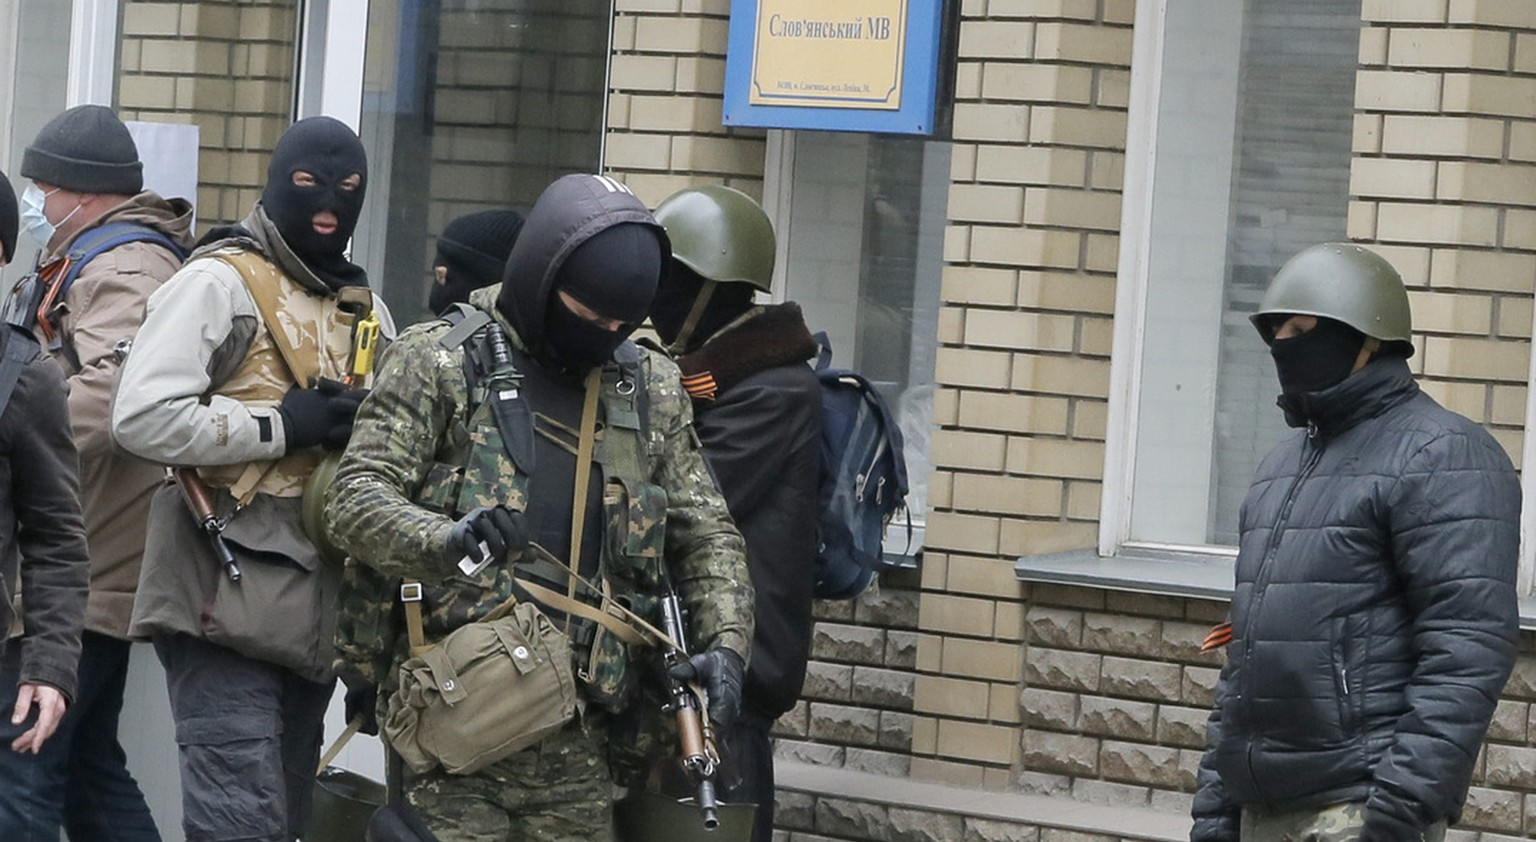 Armed pro-Russian activists occupying the police station in the eastern Ukraine town of Slovyansk carry riot shields on Saturday, April 12, 2014. Pro-Moscow protesters have seized a number of government buildings in the east over the past week, undermining the authority of the interim government in the capital, Kiev. (AP Photo/Efrem Lukatsky)